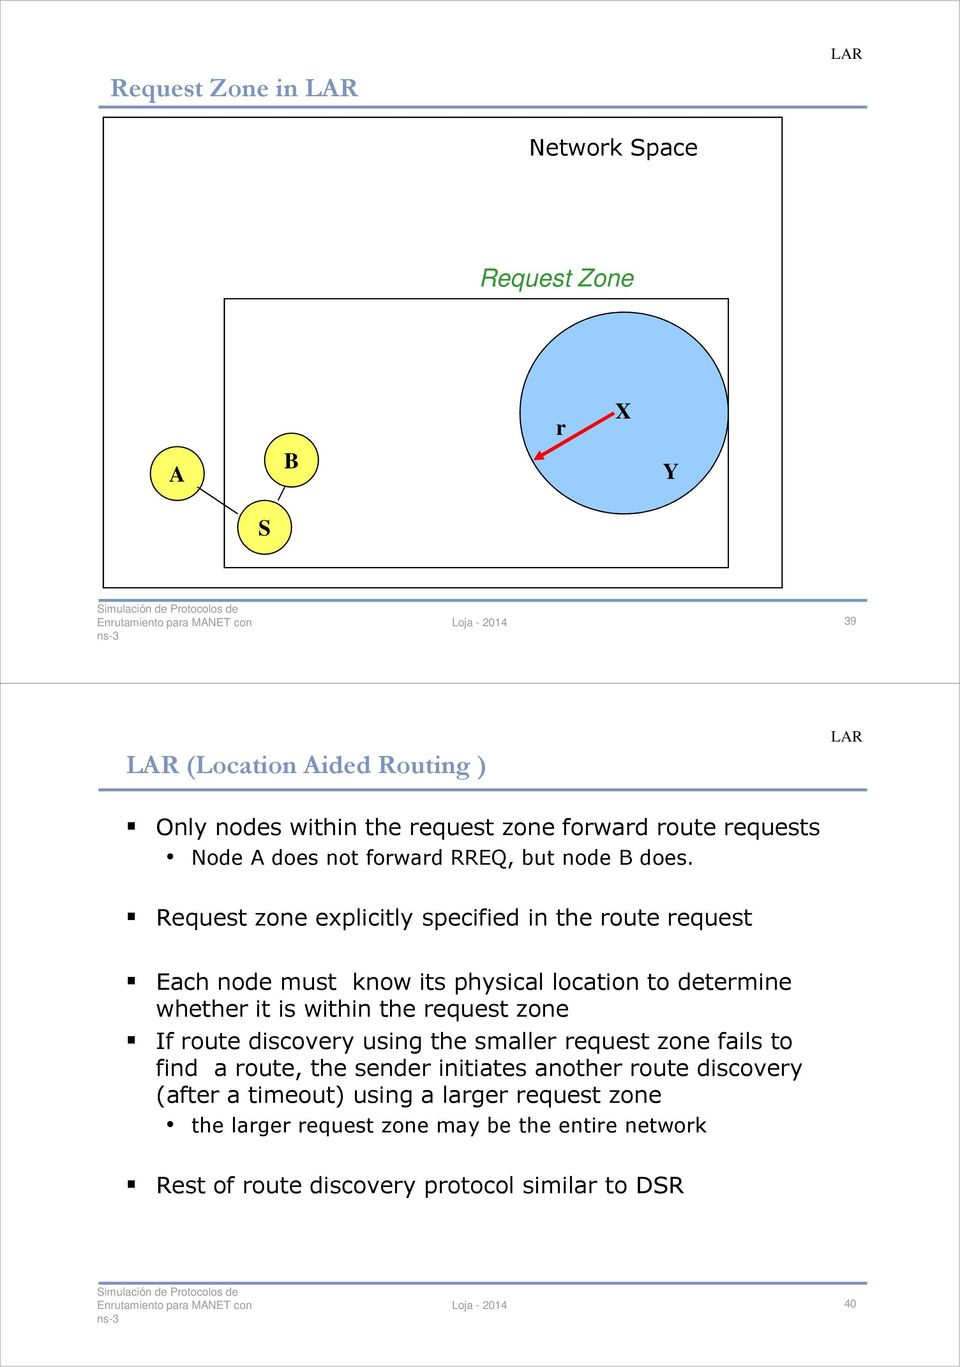 Request zone explicitly specified in the route request Each node must know its physical location to determine whether it is within the request zone If